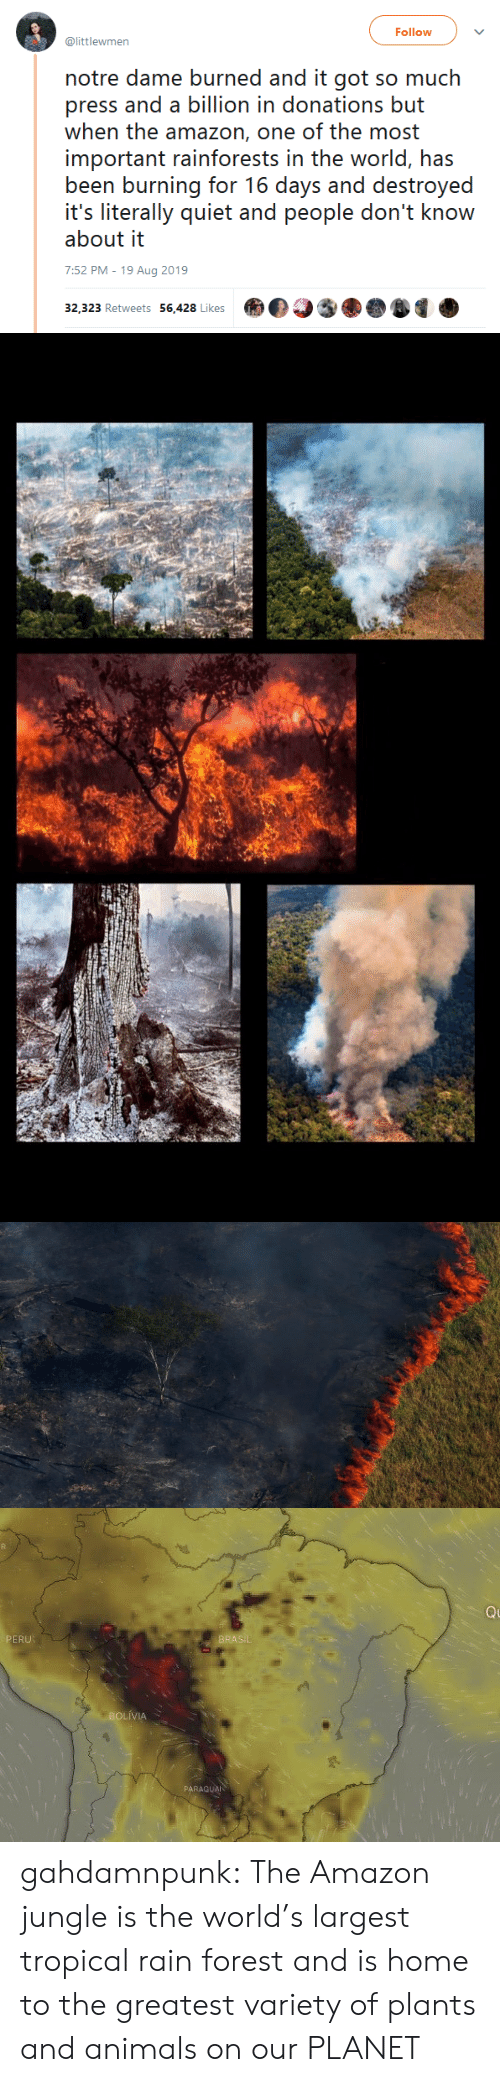 jungle: Follow  @littlewmen  notre dame burned and it got so much  press and a billion in donations but  when the amazon, one of the most  important rainforests in the world, has  been burning for 16 days and destroyed  it's literally quiet and people don't know  about it  7:52 PM - 19 Aug 2019  32,323 Retweets 56,428 Likes   Q  PERU  BRASIL  BOLIVIA  PARAGUAN gahdamnpunk: The Amazon jungle is the world's largest tropical rain forest and is home to the greatest variety of plants and animals on our PLANET